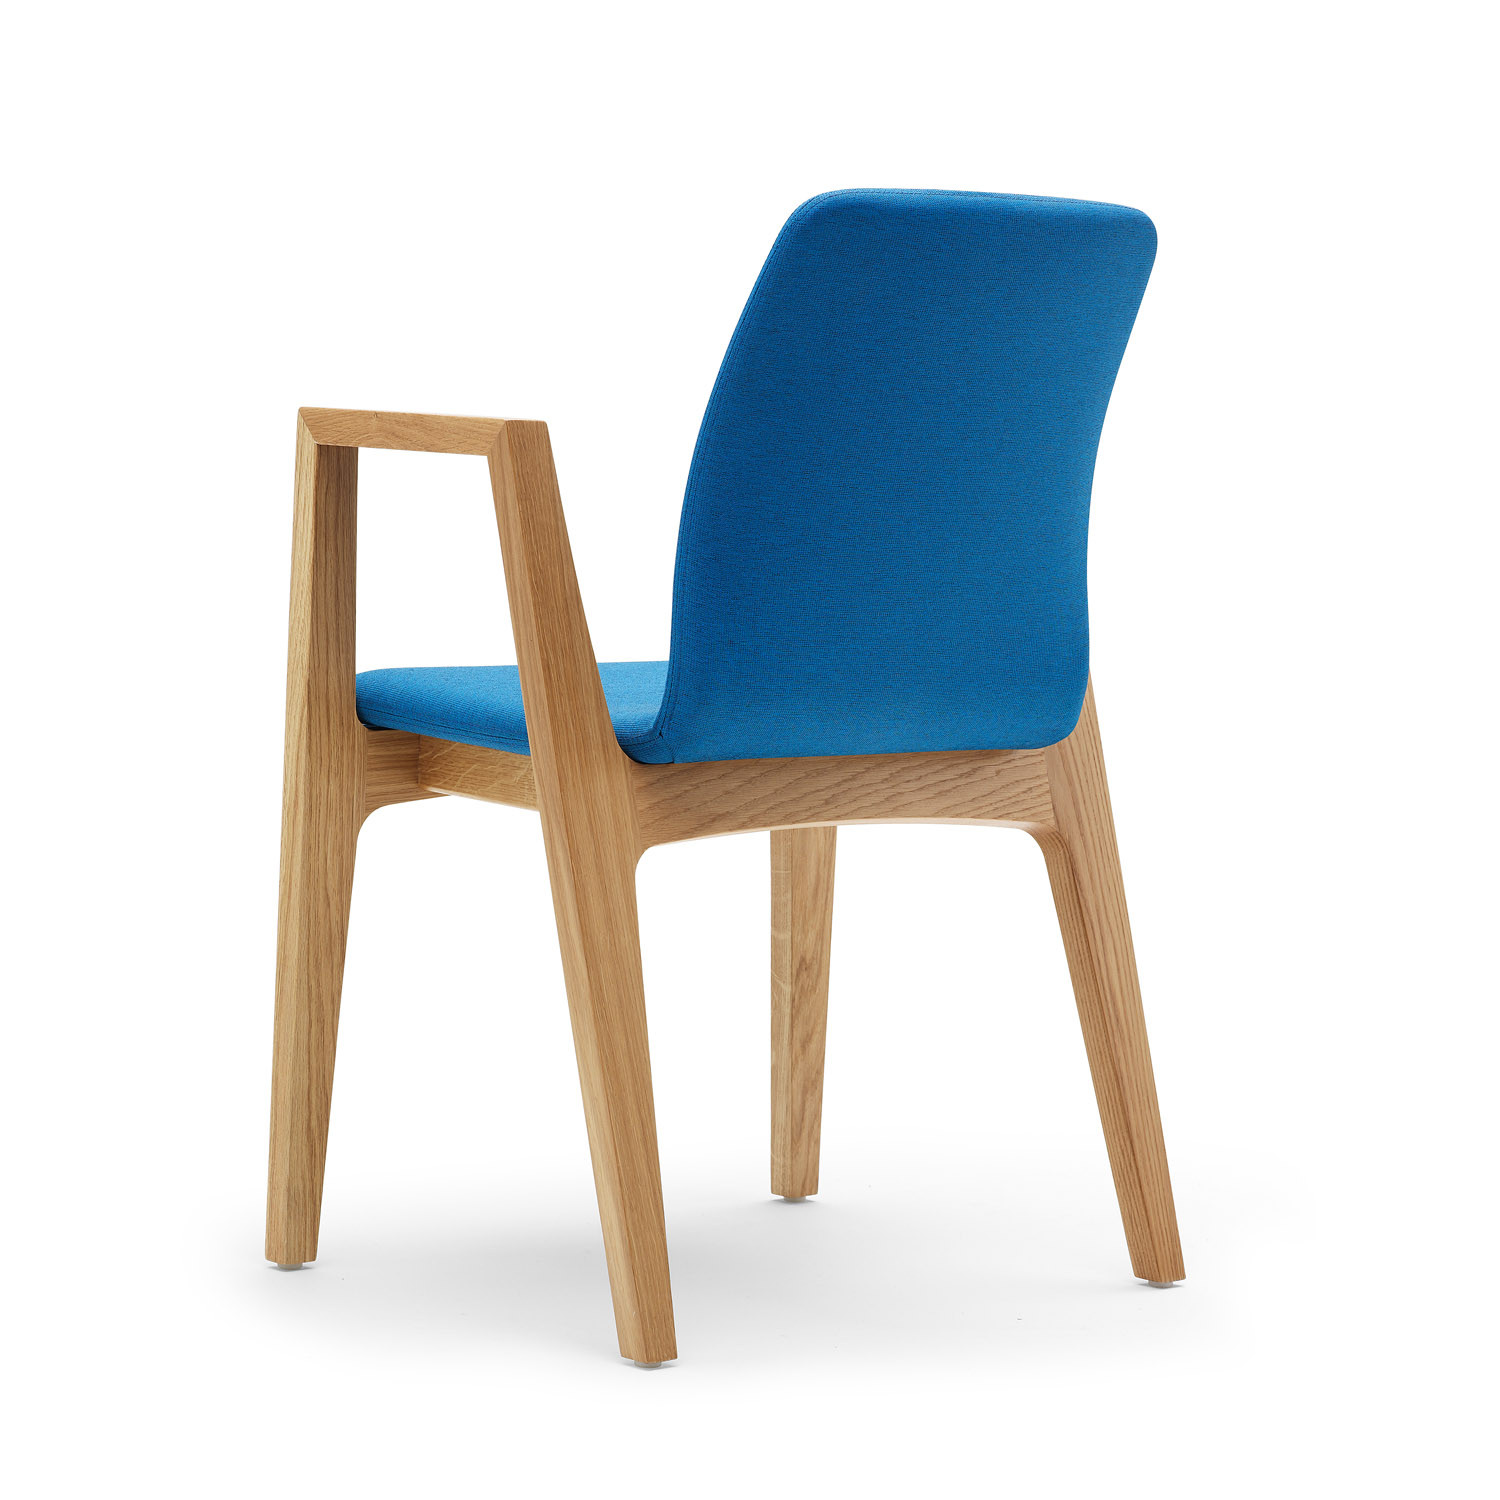 Agent Armchair from Lyndon Design